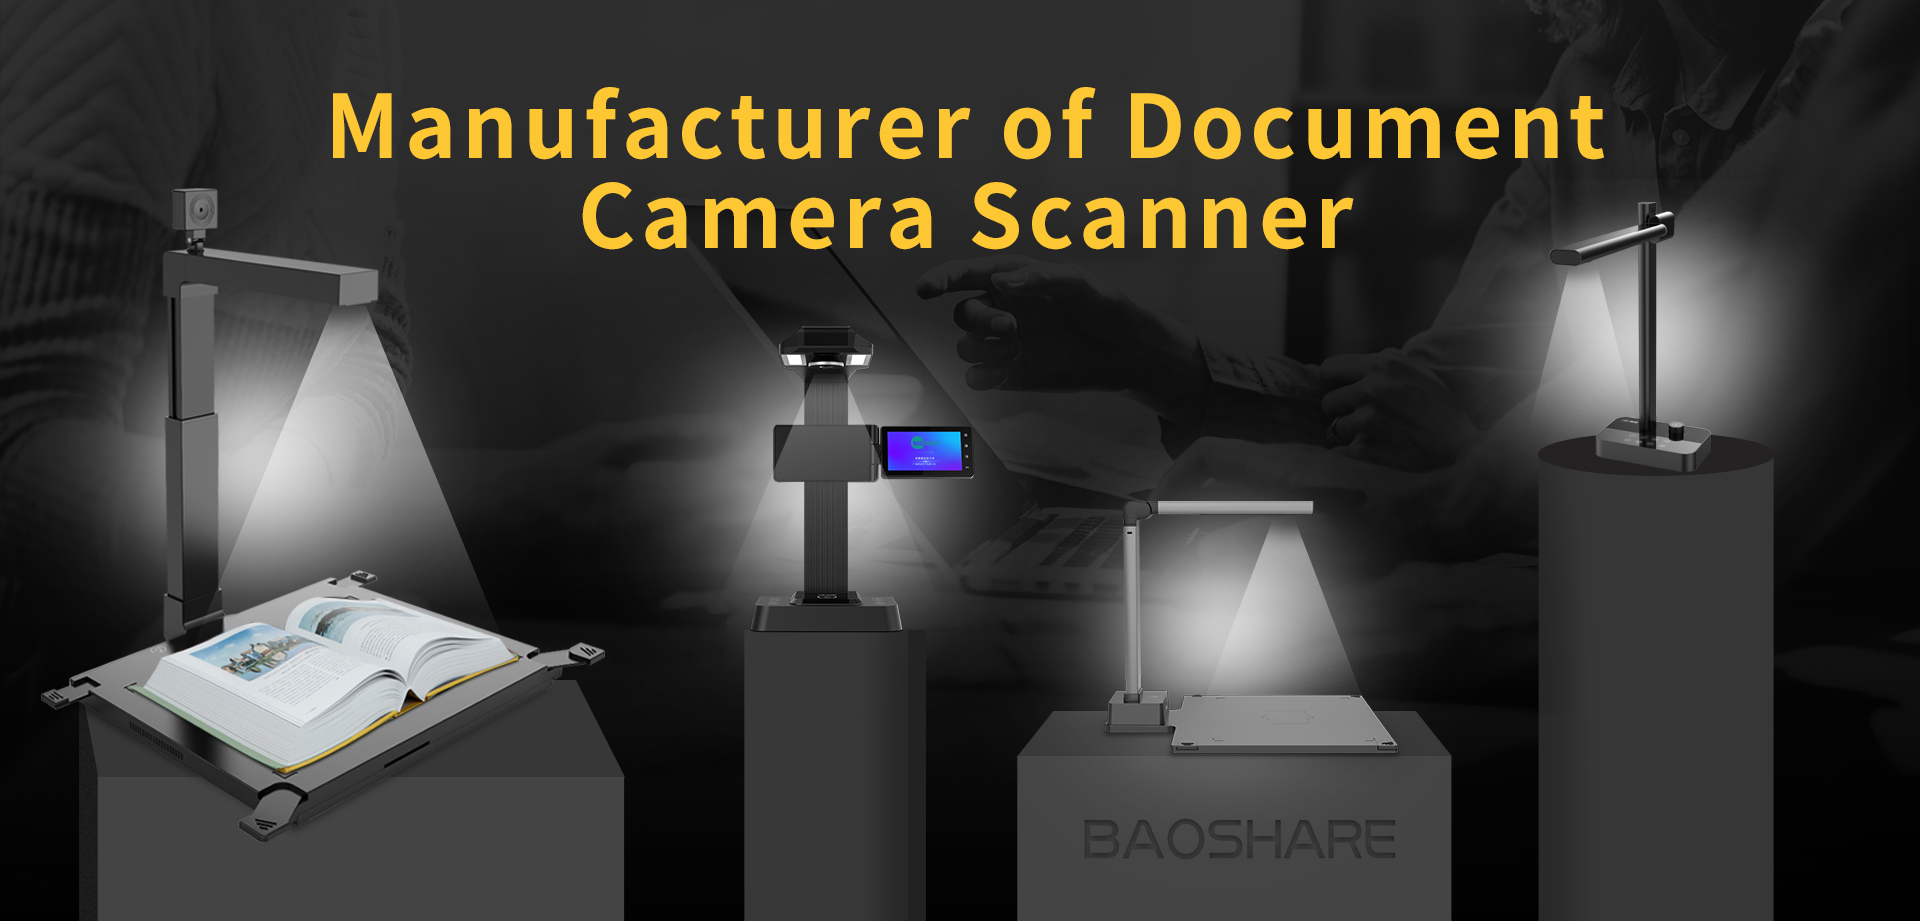 Document Camera Scanner